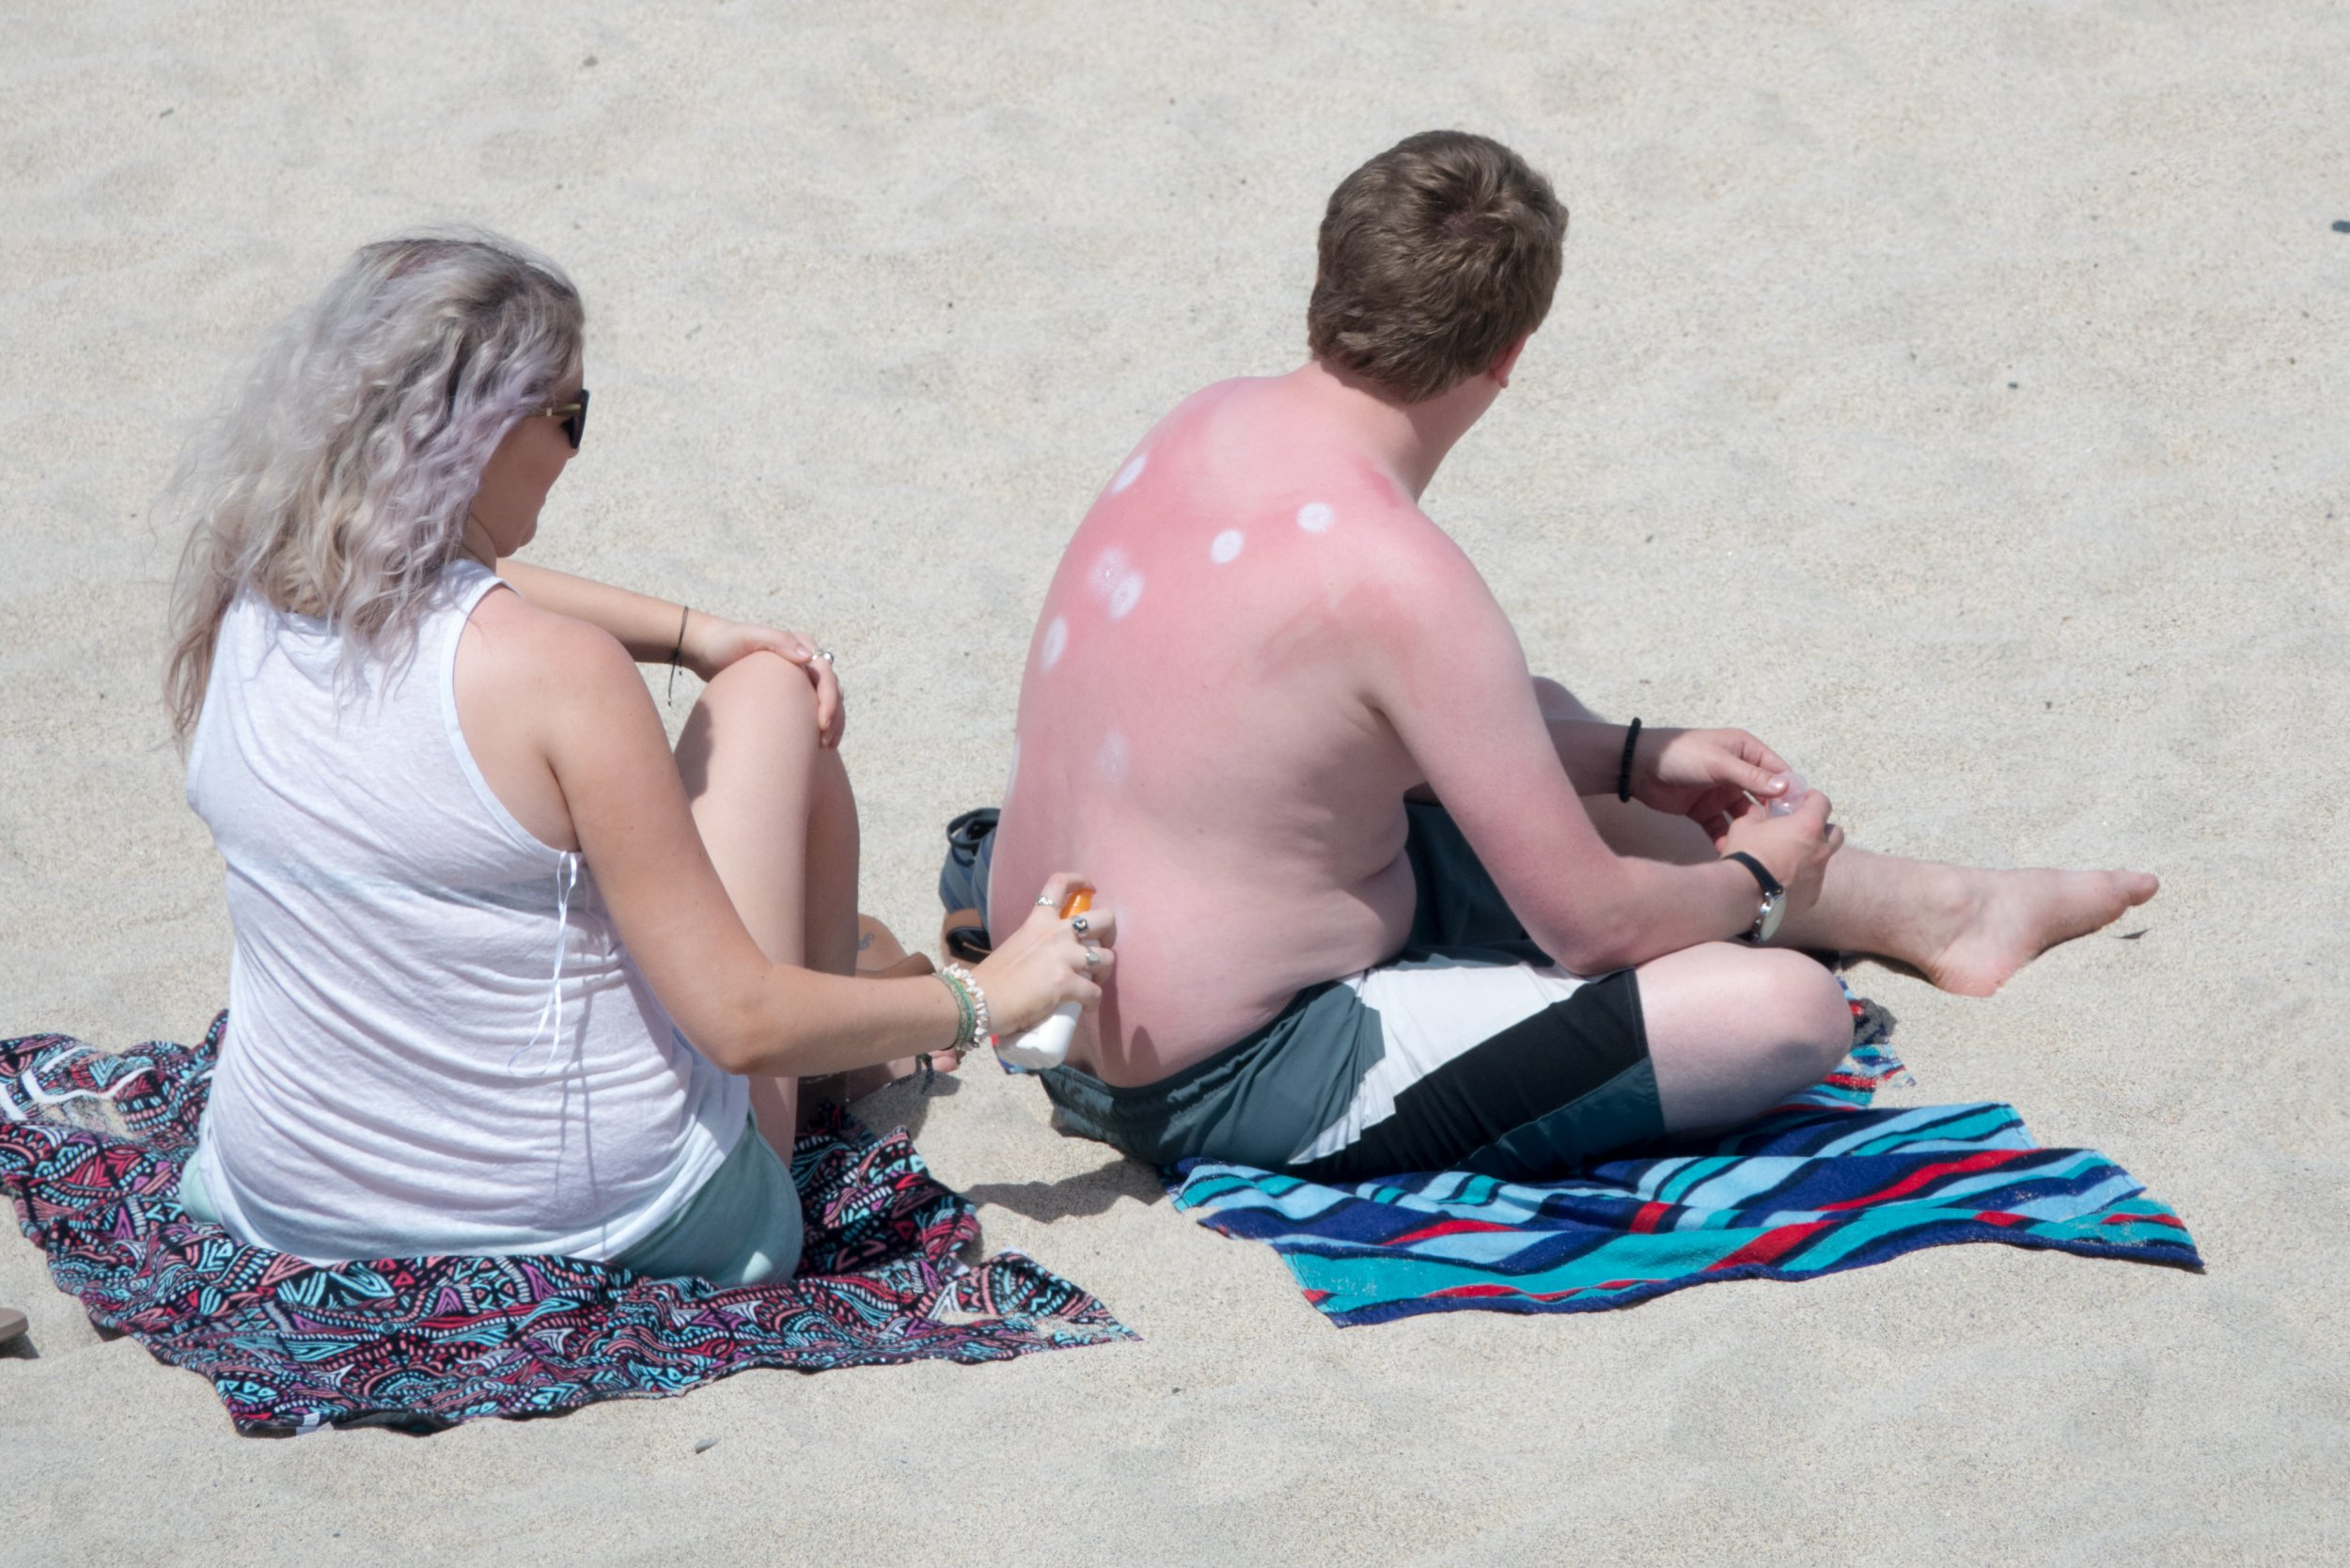 ST IVES, ENGLAND - JUNE 27: A woman applies sun lotion to a man's back as they enjoy the fine weather on Porthmeor Beach in St Ives on June 27, 2018 in Cornwall, England. Parts of the UK continue to bask in heatwave weather with the hottest temperatures of the year recorded this afternoon, 89F (31.9C) reached in Portmadog in Wales. Meanwhile 88F (30.8C) was recorded in Northern Ireland, making today the hottest day in the country's history. (Photo by Matt Cardy/Getty Images)